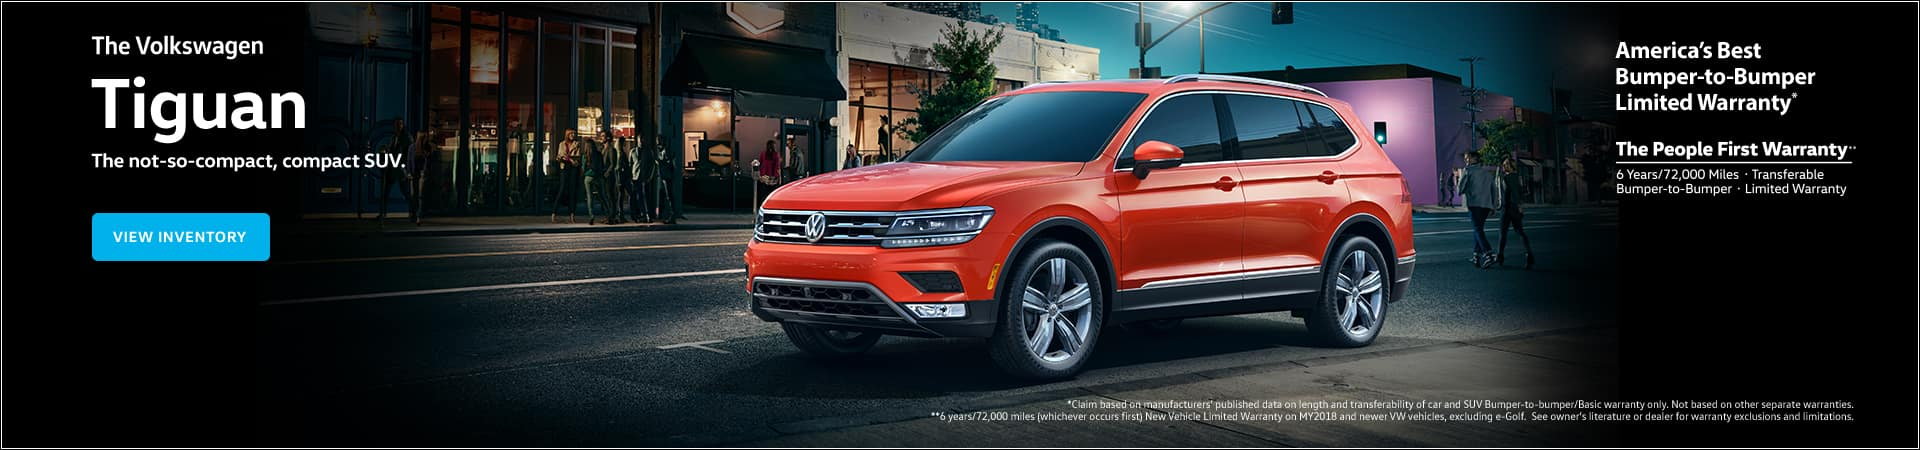 lenox volkswagen joliet chicago hawkvw hawk dealer your naperville of welcome as cars vw used to mokena serving il new